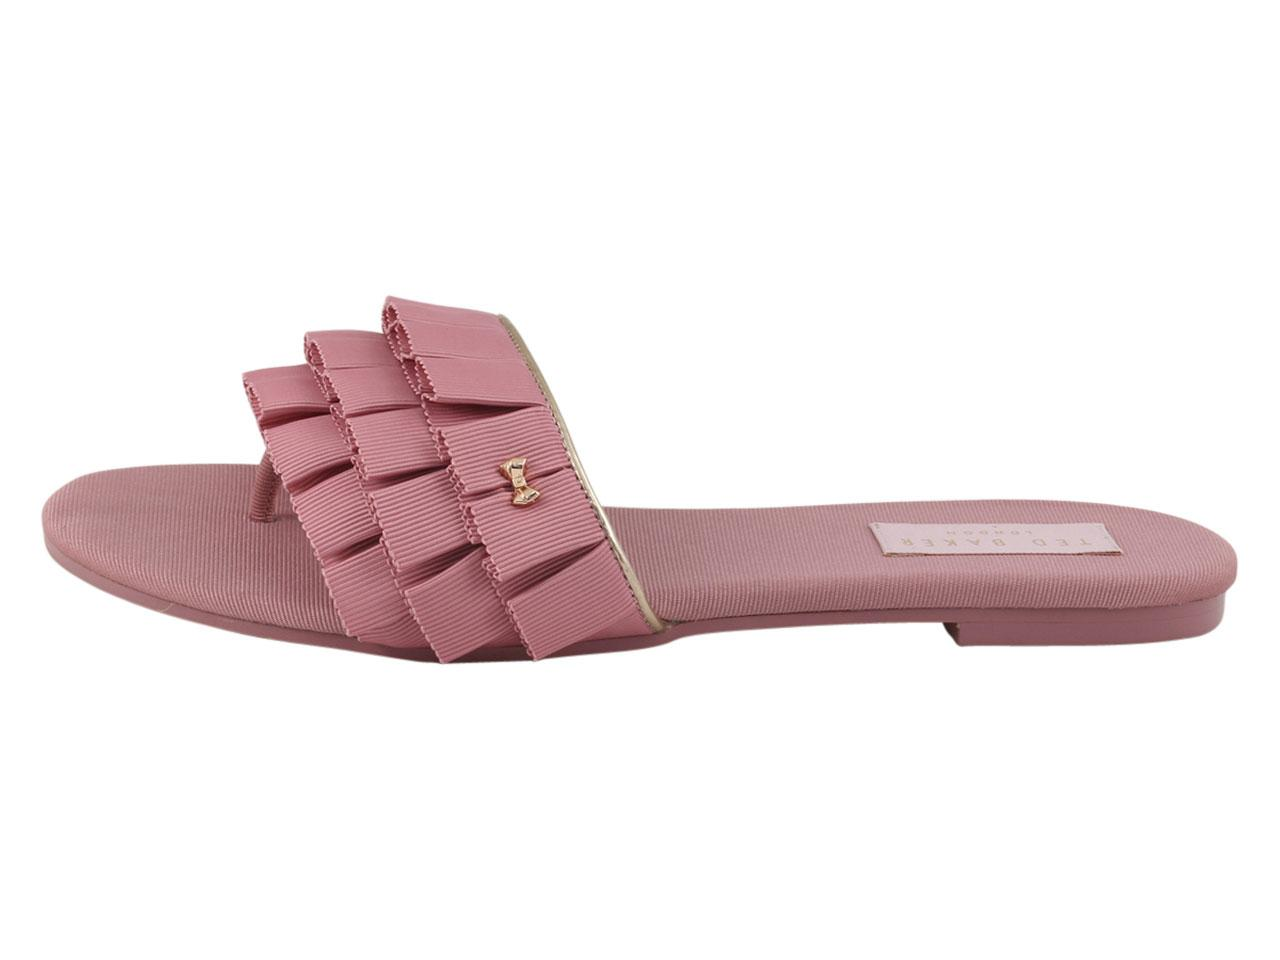 4a5c95aae00f2c Ted Baker Women s Towdi Slides Sandals Shoes